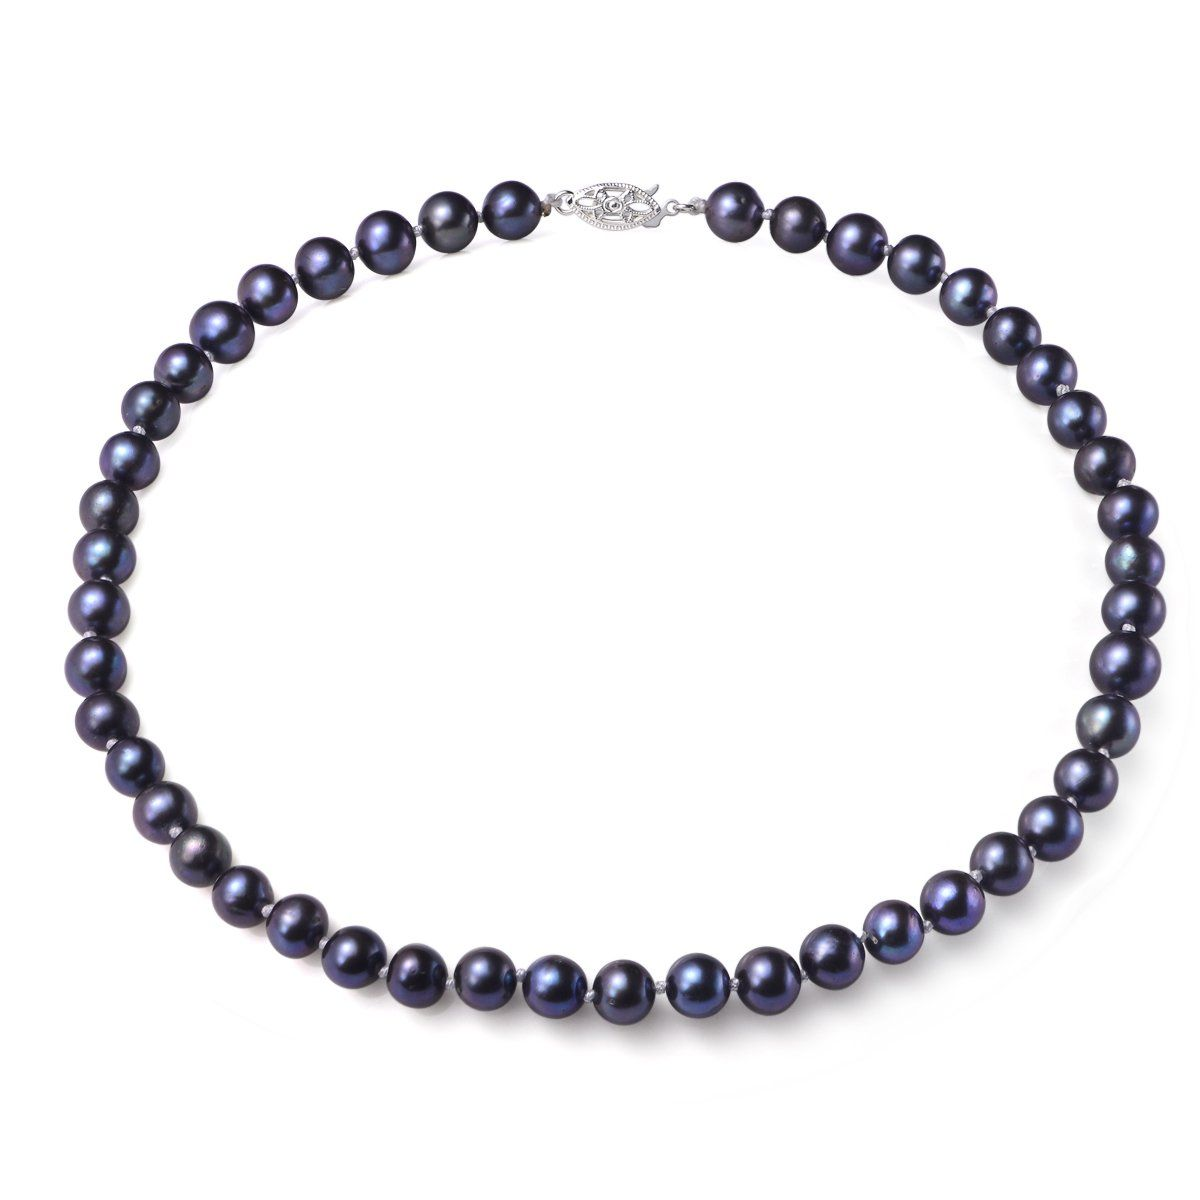 black, 7-8mm, aa, cultured freshwater pearl strand necklace with 925 sterling silver fish hook